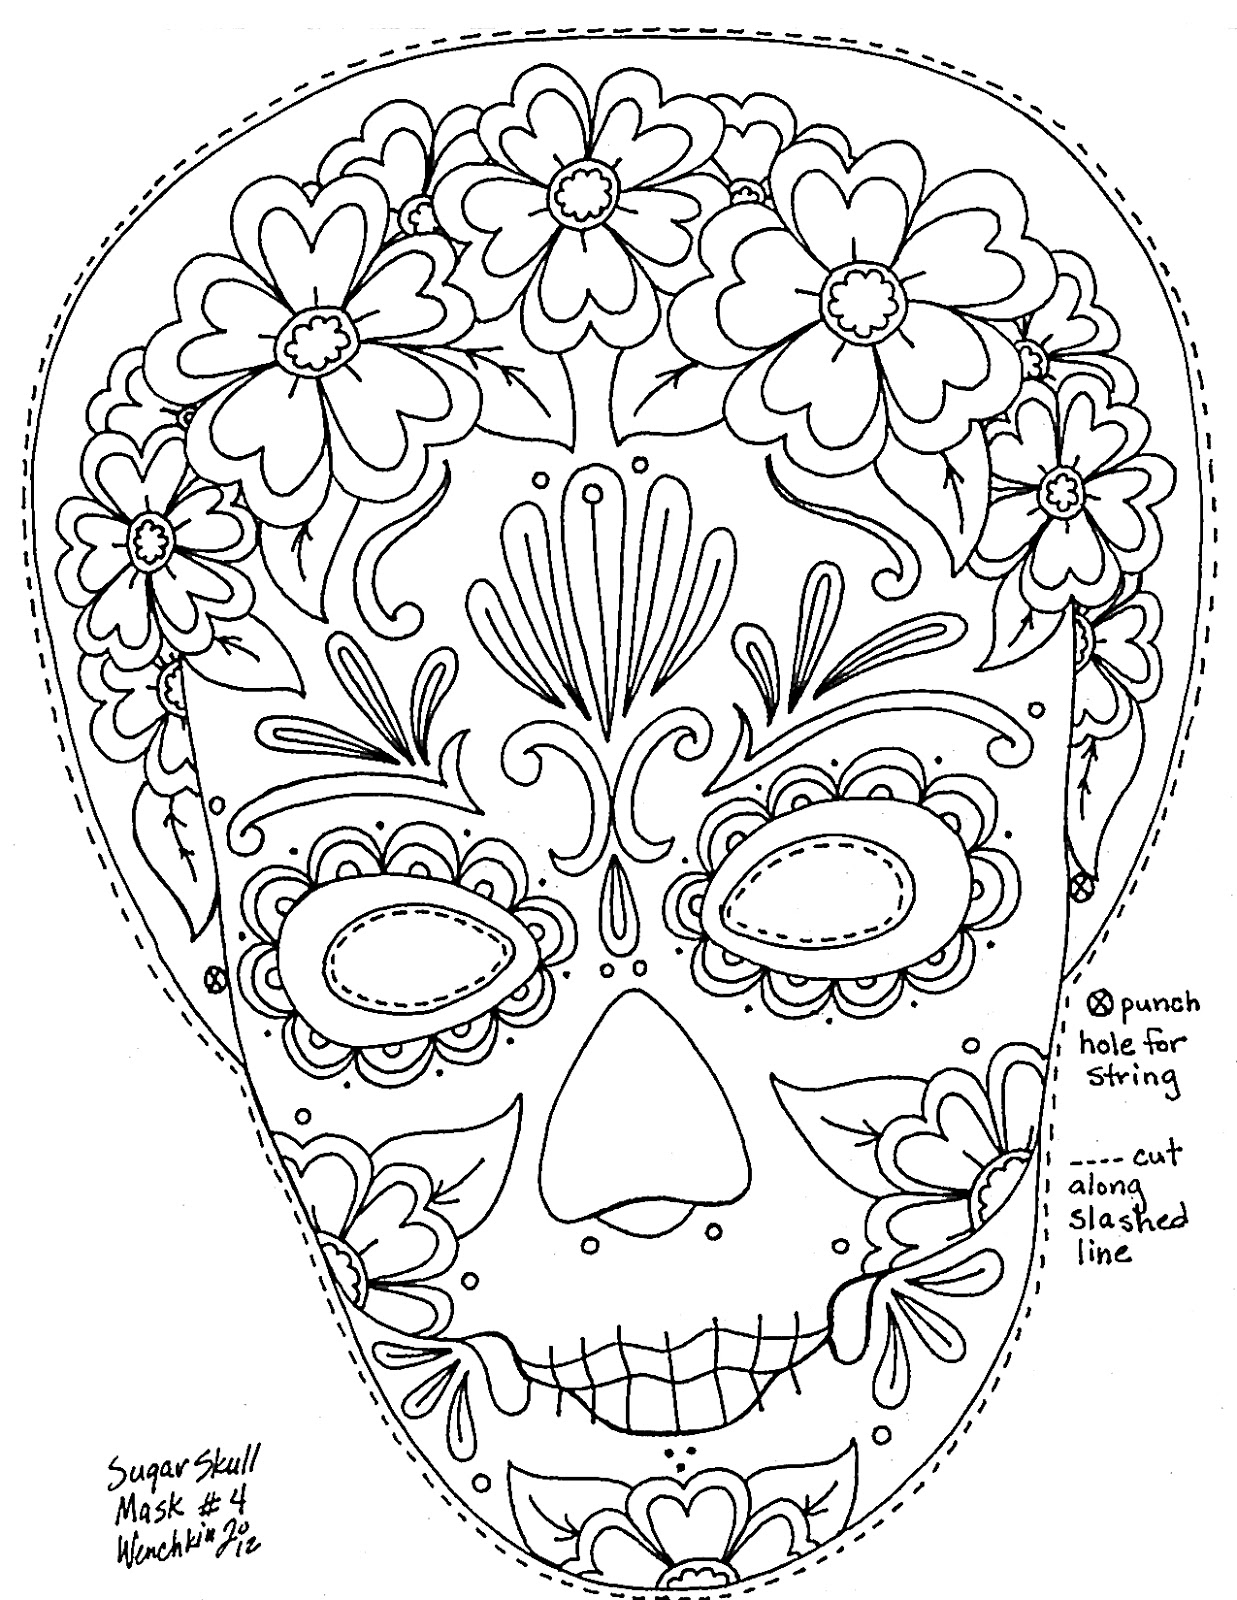 sugar skull coloring pages printable free printable skull coloring pages for kids pages printable coloring skull sugar